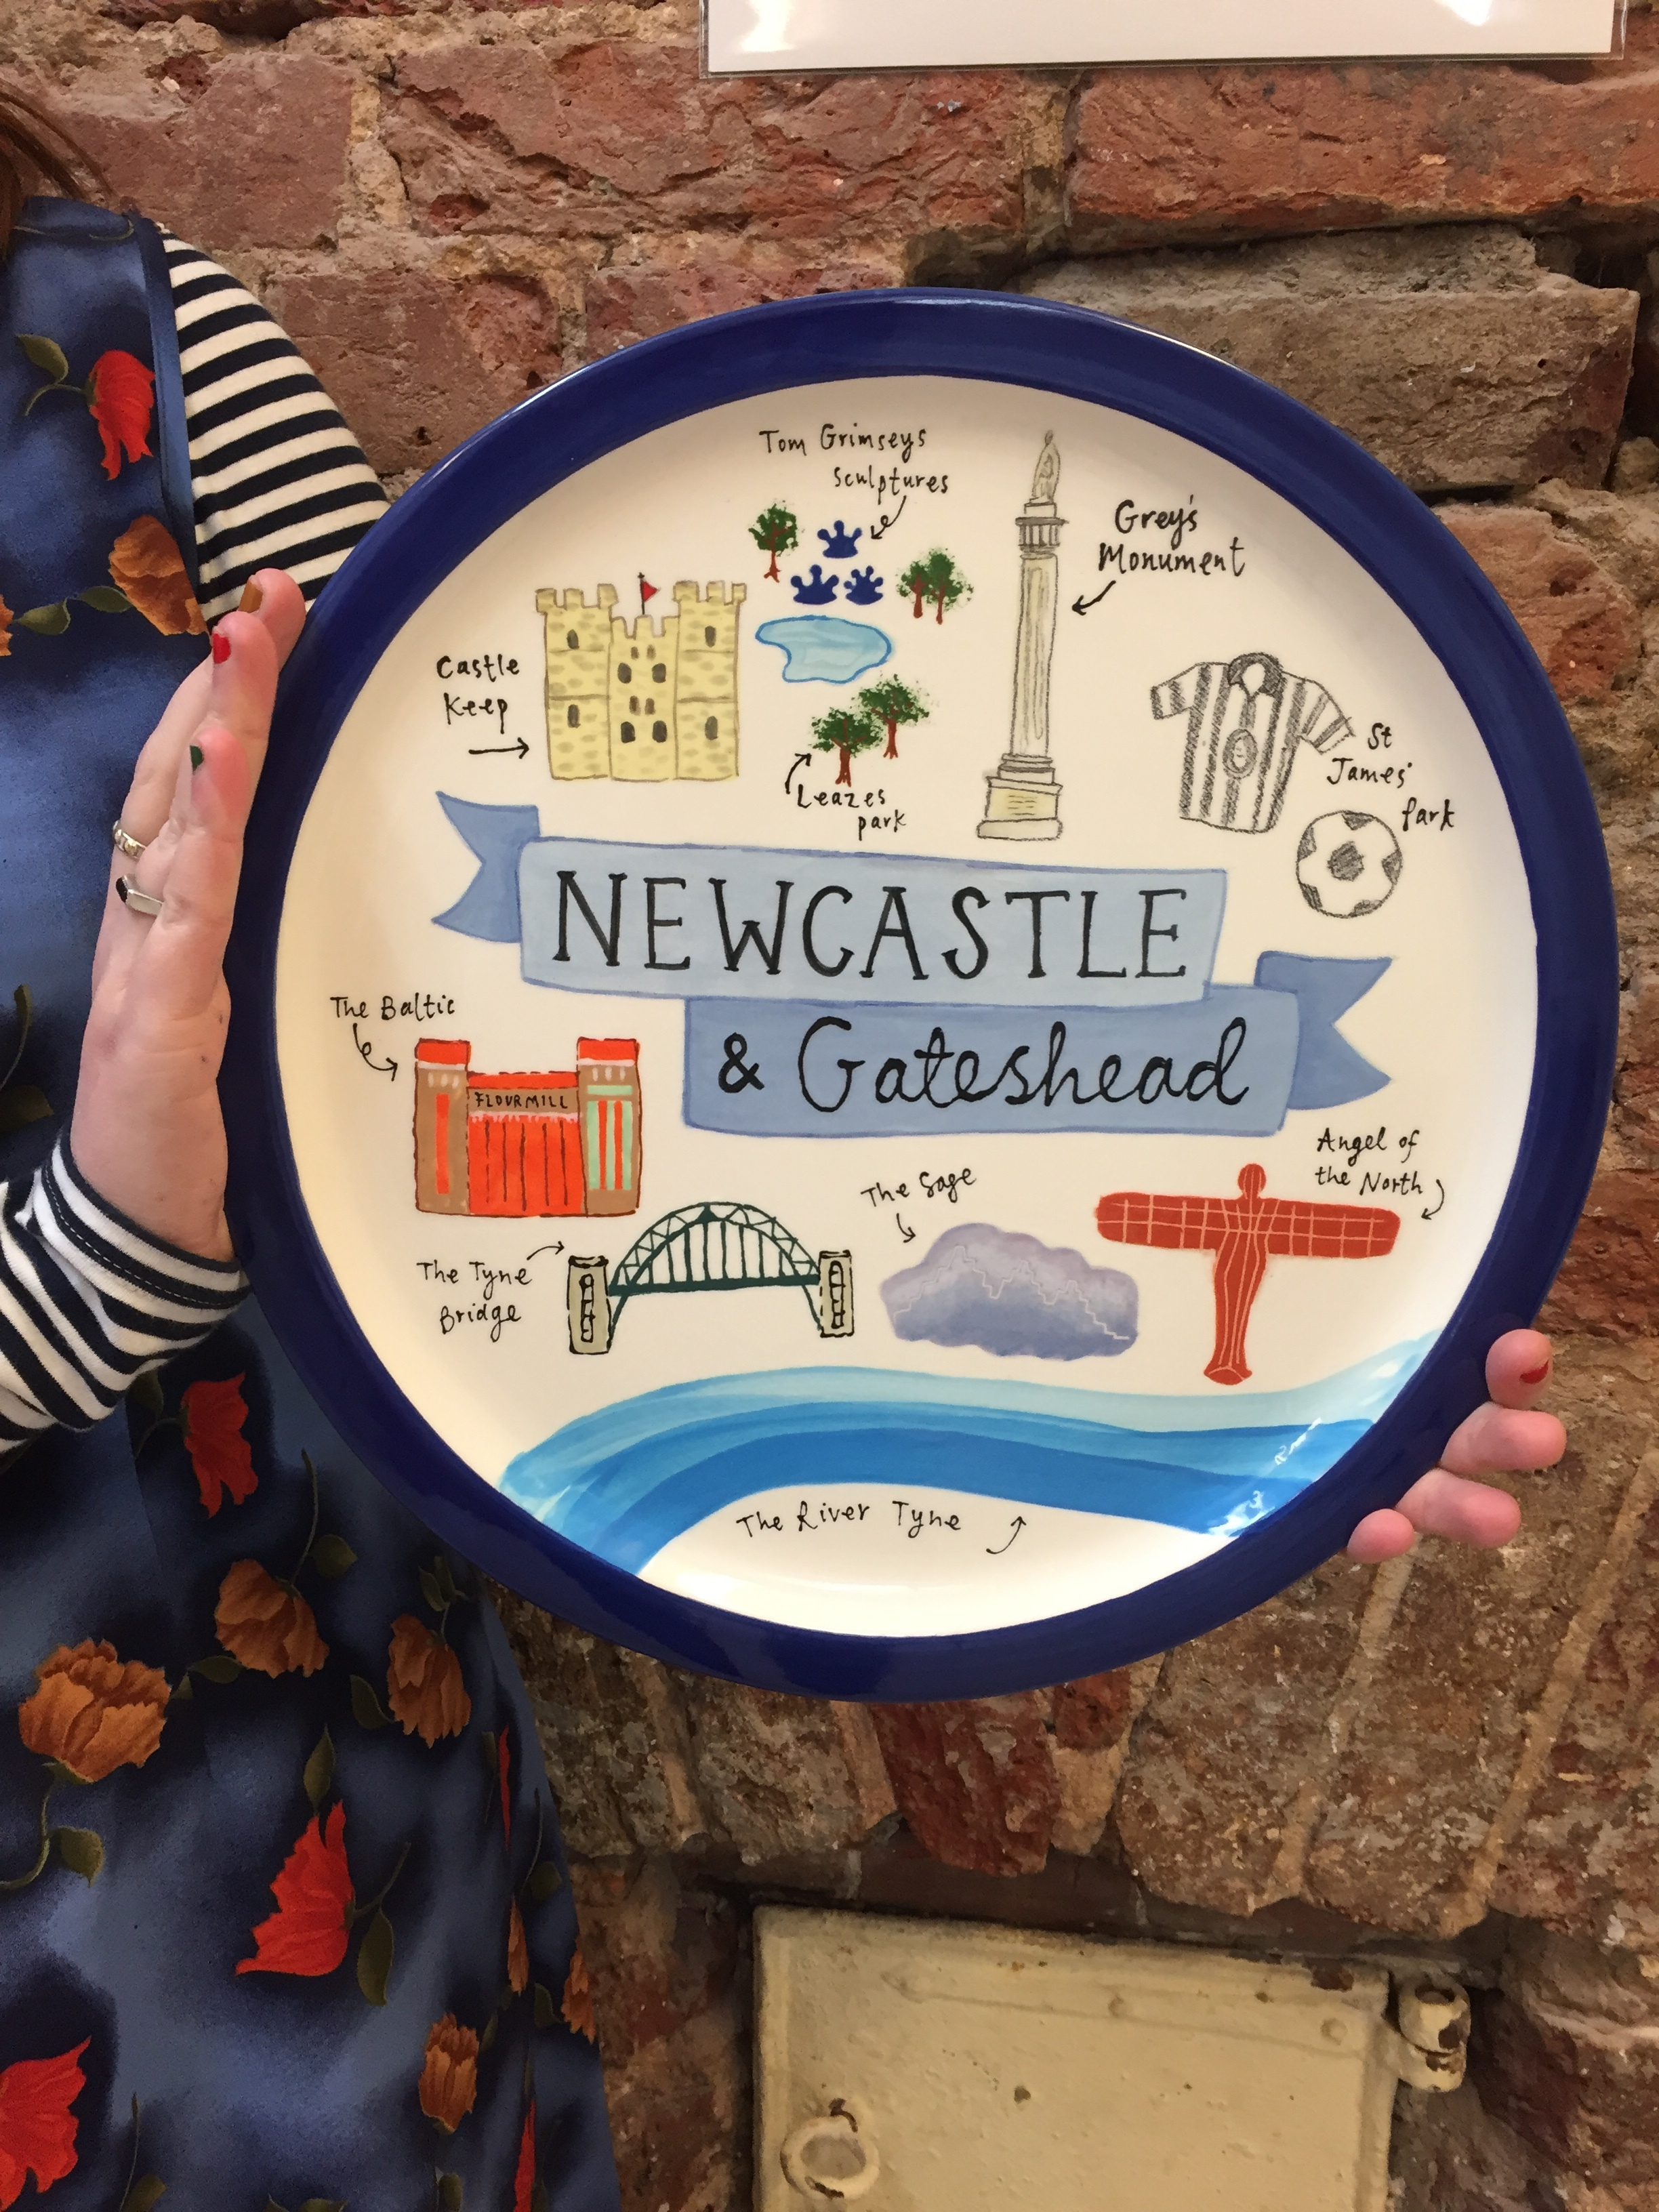 Newcastle and gateshead pottery painting plate ideas and examples